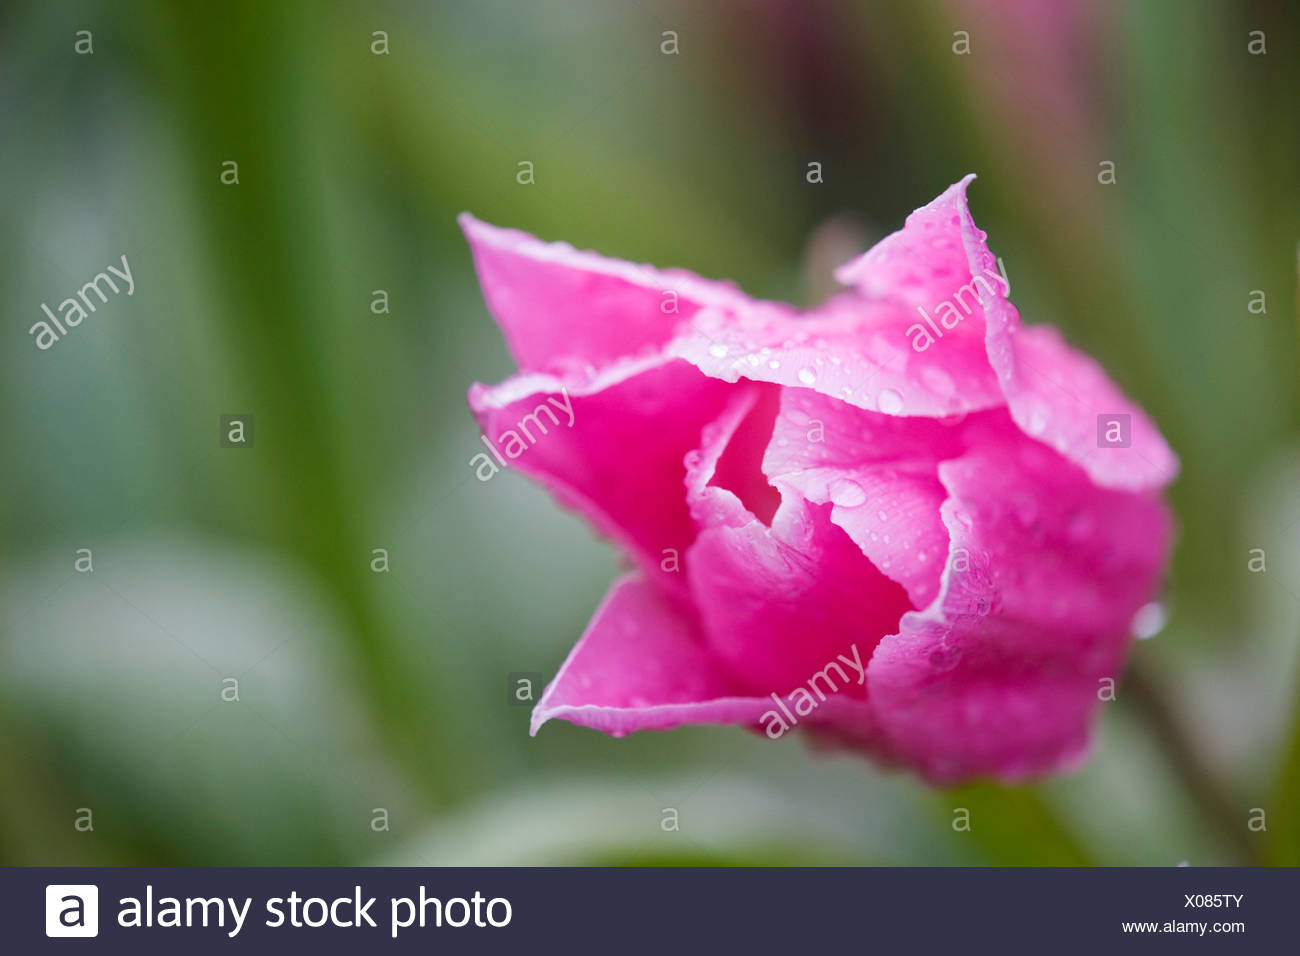 China Pink Flower Stock Photos China Pink Flower Stock Images Alamy